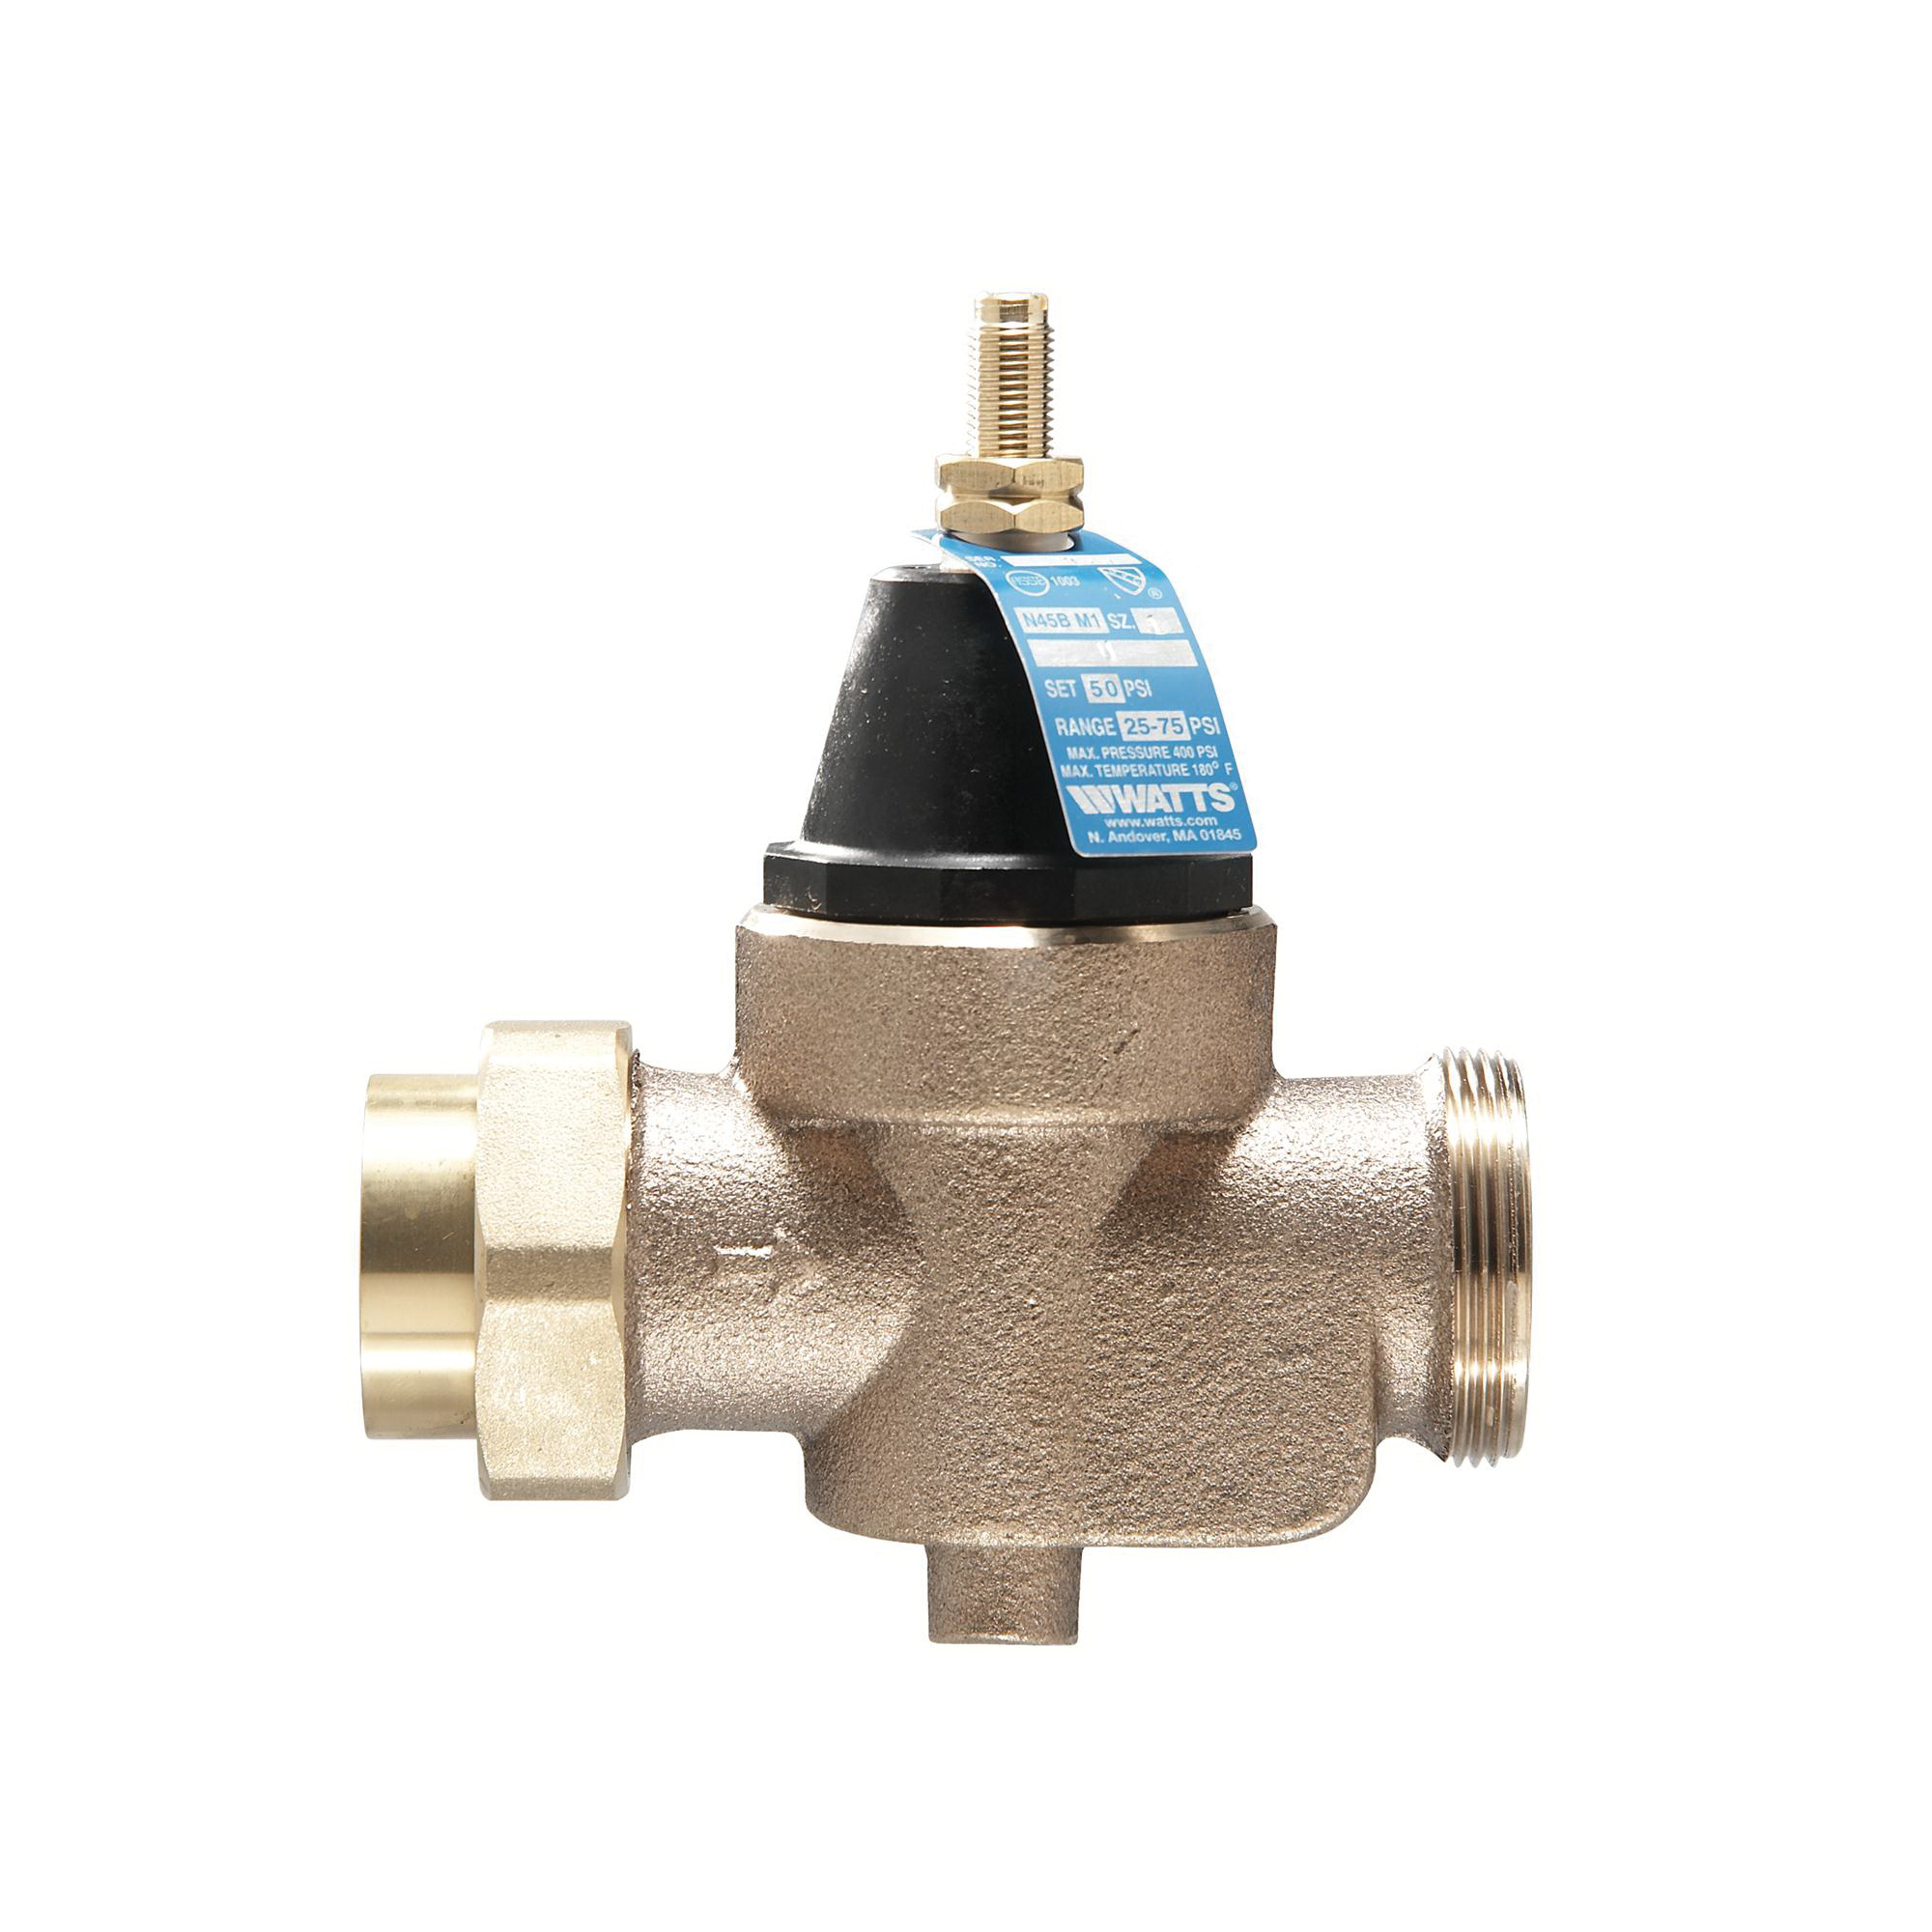 WATTS® 0009471 LFN45B-M1 Standard Capacity Pressure Reducing Valve, 1/2 in, NPT Union Inlet x FNPT Outlet, 400 psi Working, Copper Silicon Alloy Body